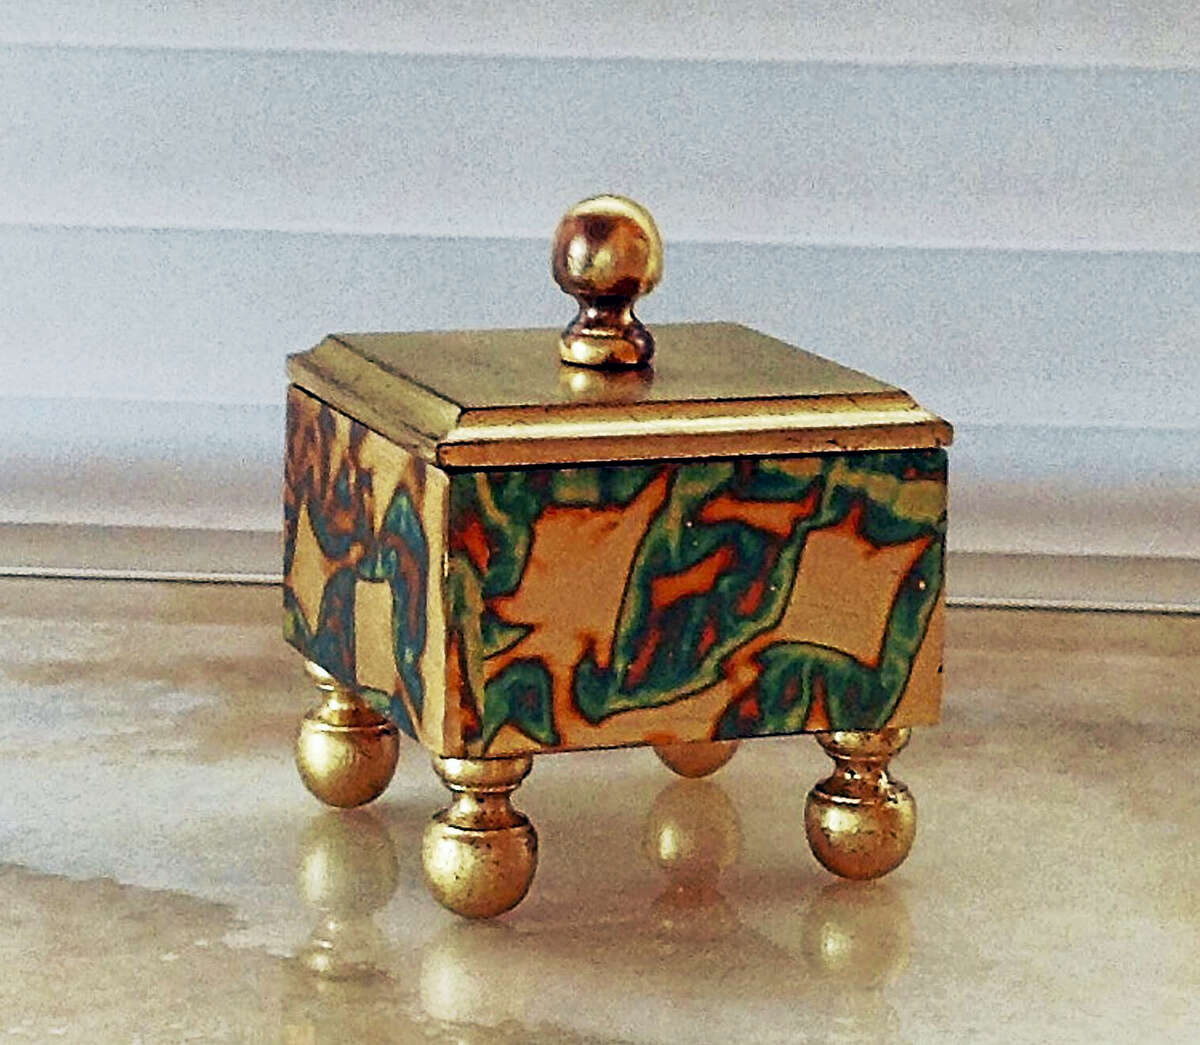 Contributed photo Napoleon, hardwood, gilded interior and exterior w. gold metal leaf, fabric bottom, by Linda Rizzuto.